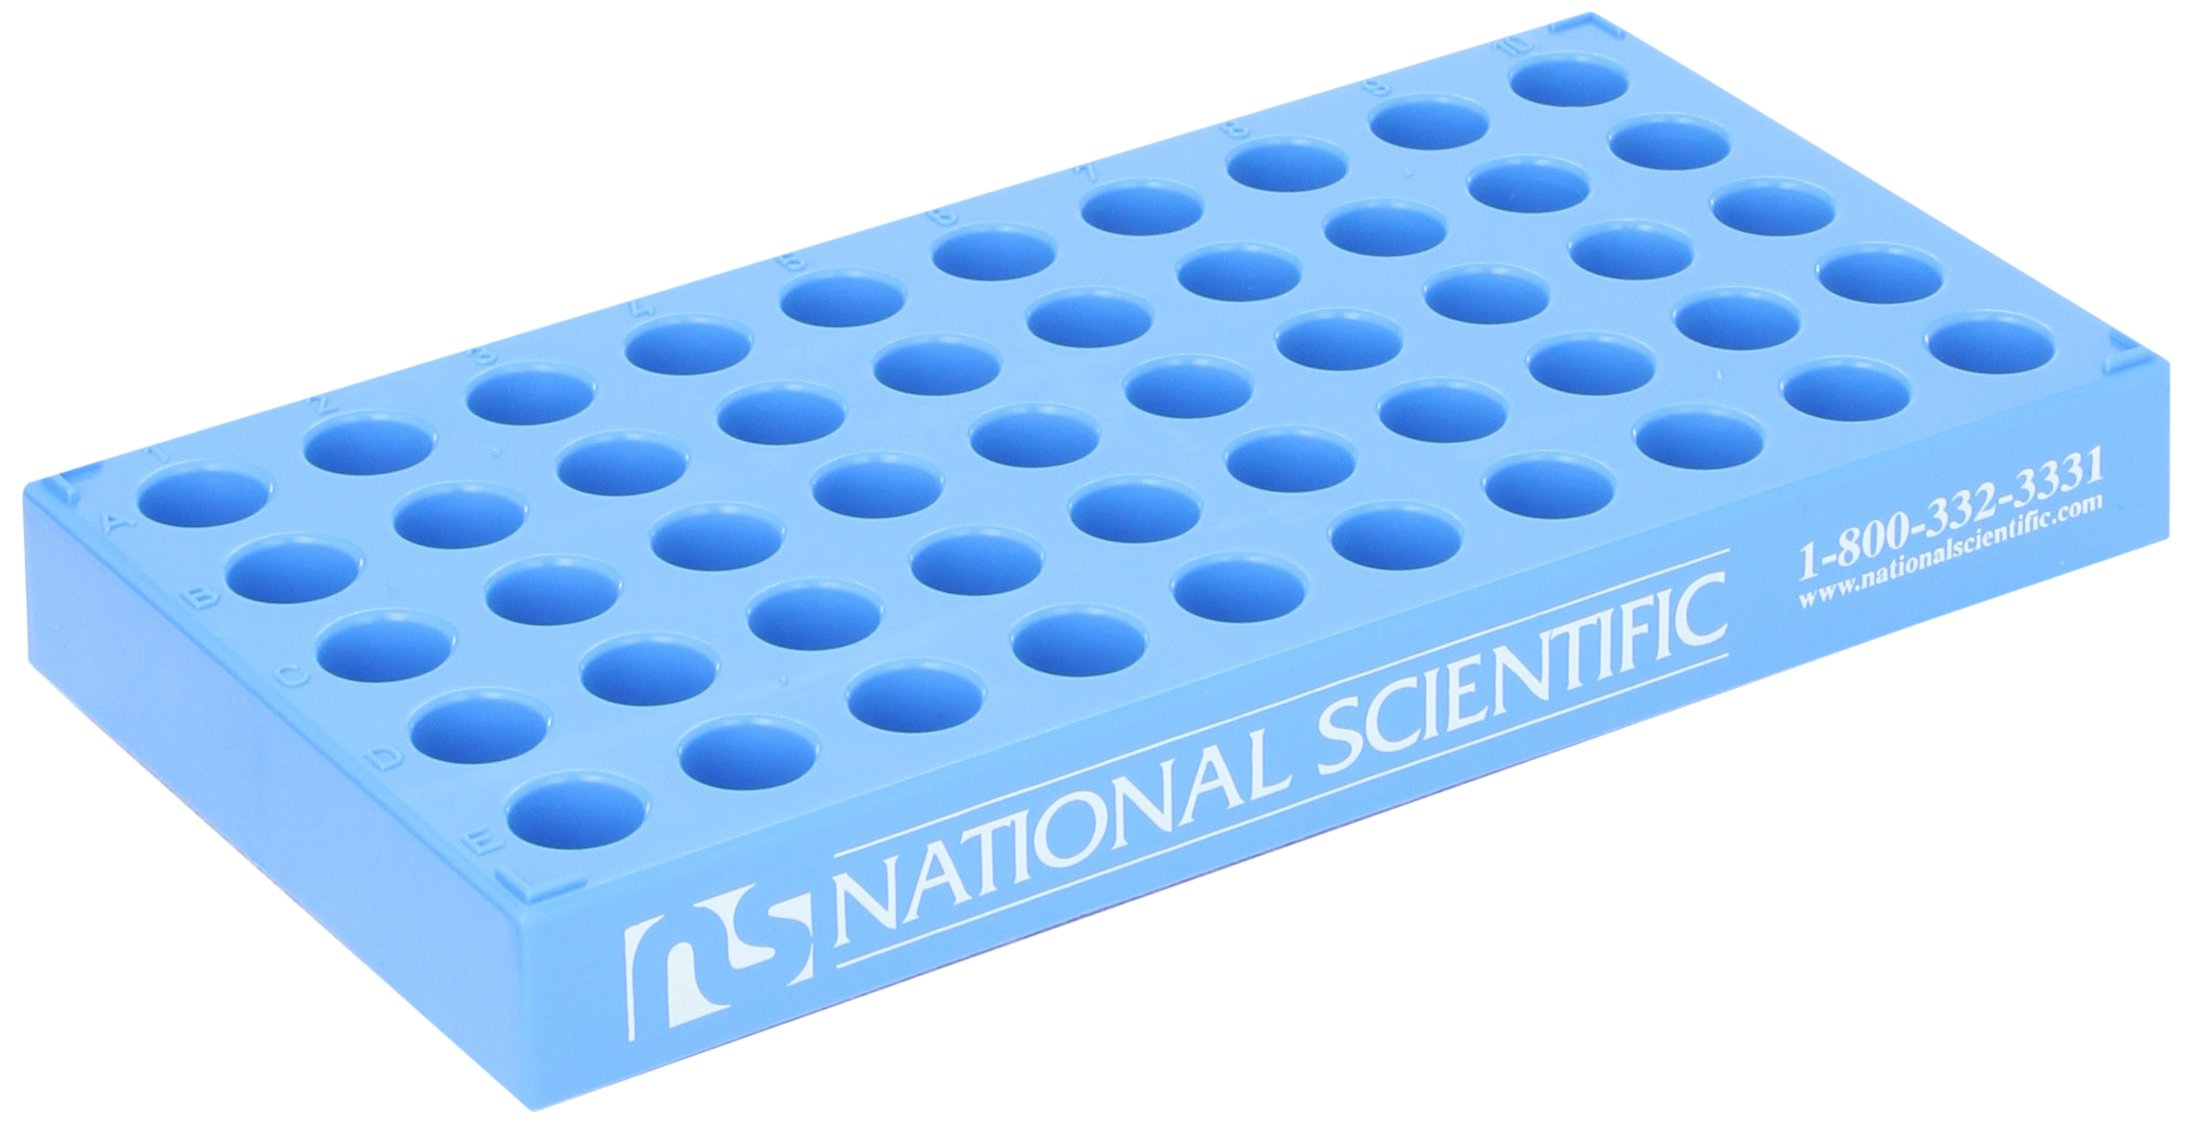 National Scientific C4012-25 Polypropylene Vial Rack for 12mm Diameter Vial (Case of 5)